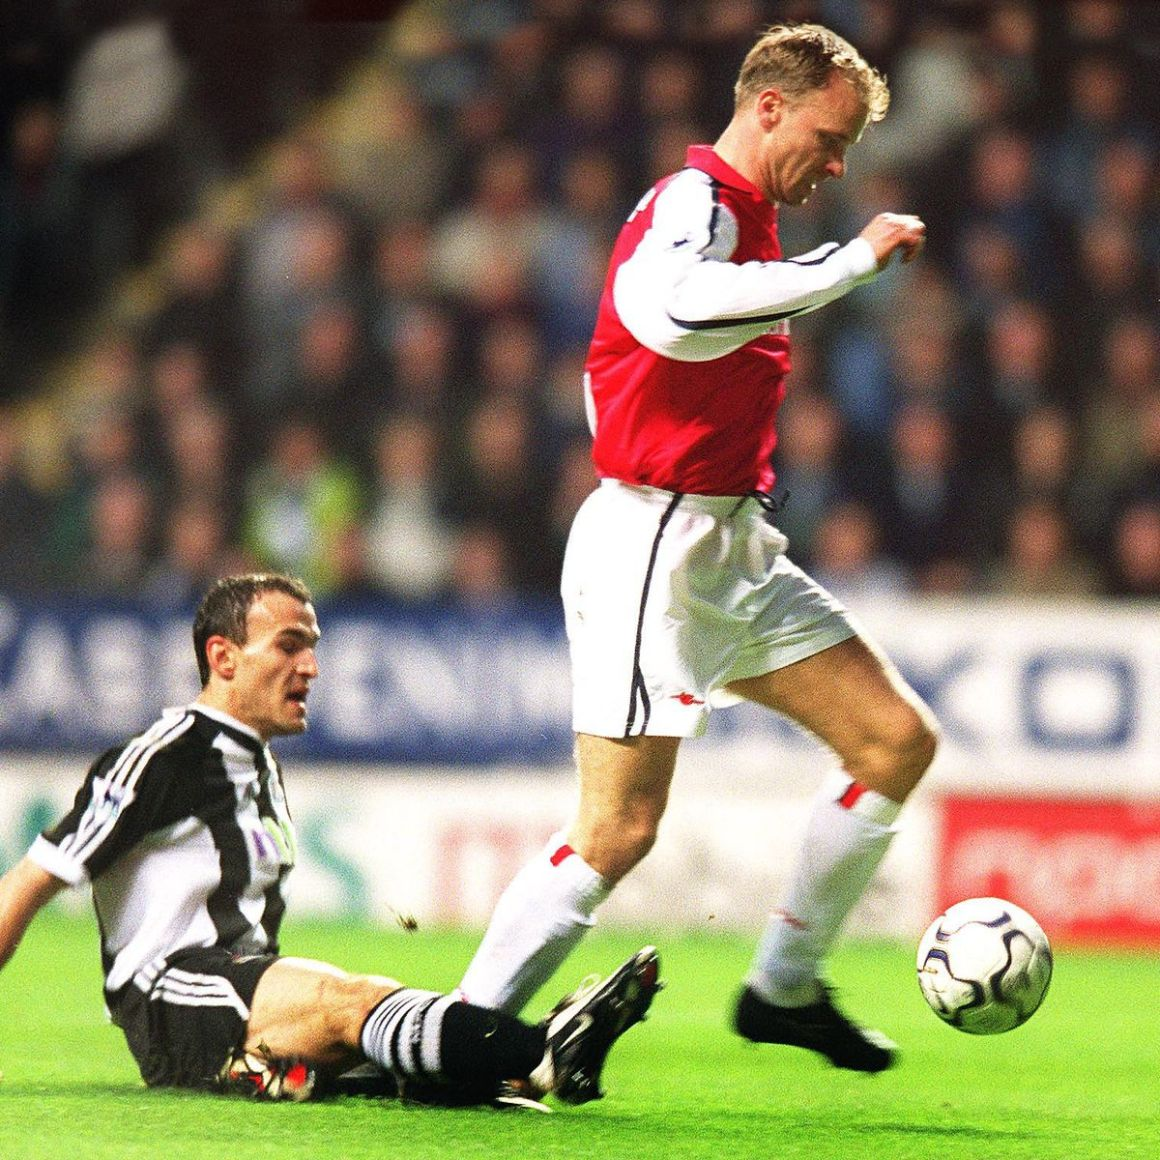 Arsenal legend Dennis Bergkamp opens up on his iconic goal against Newcastle United - football.london